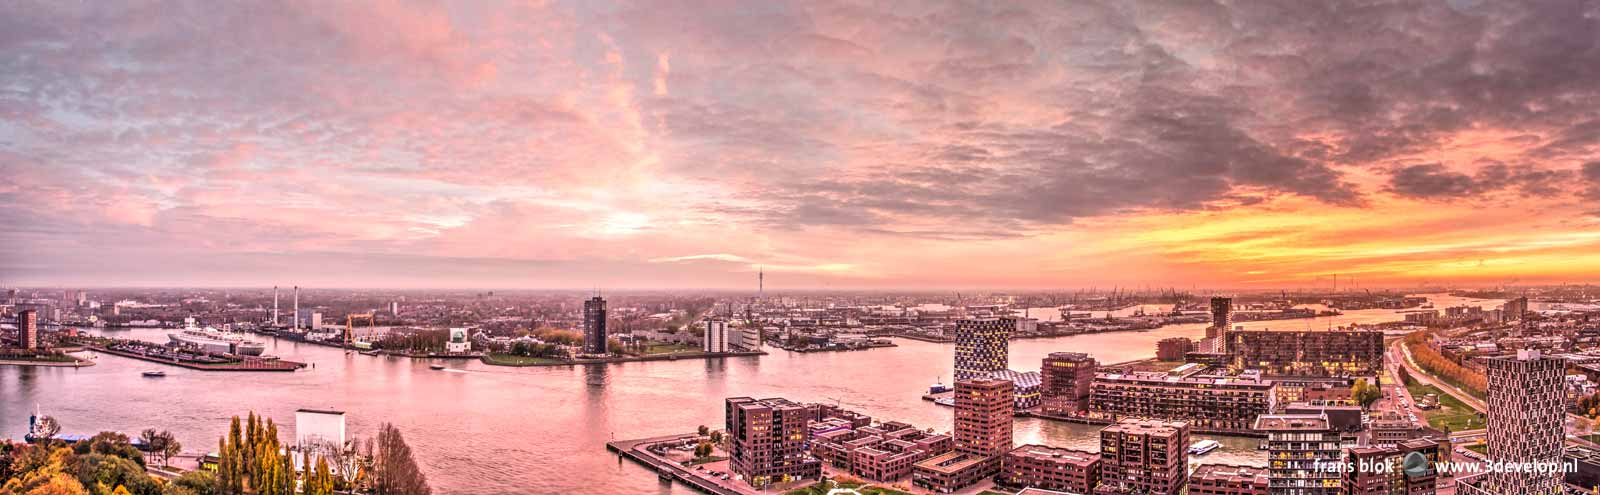 Panoramic image with a spectacular and dramatic sky at sunset over Lloydkwartier, Nieuwe Maas river, Charlois and Waalhaven in Rotterdam, The Netherlands